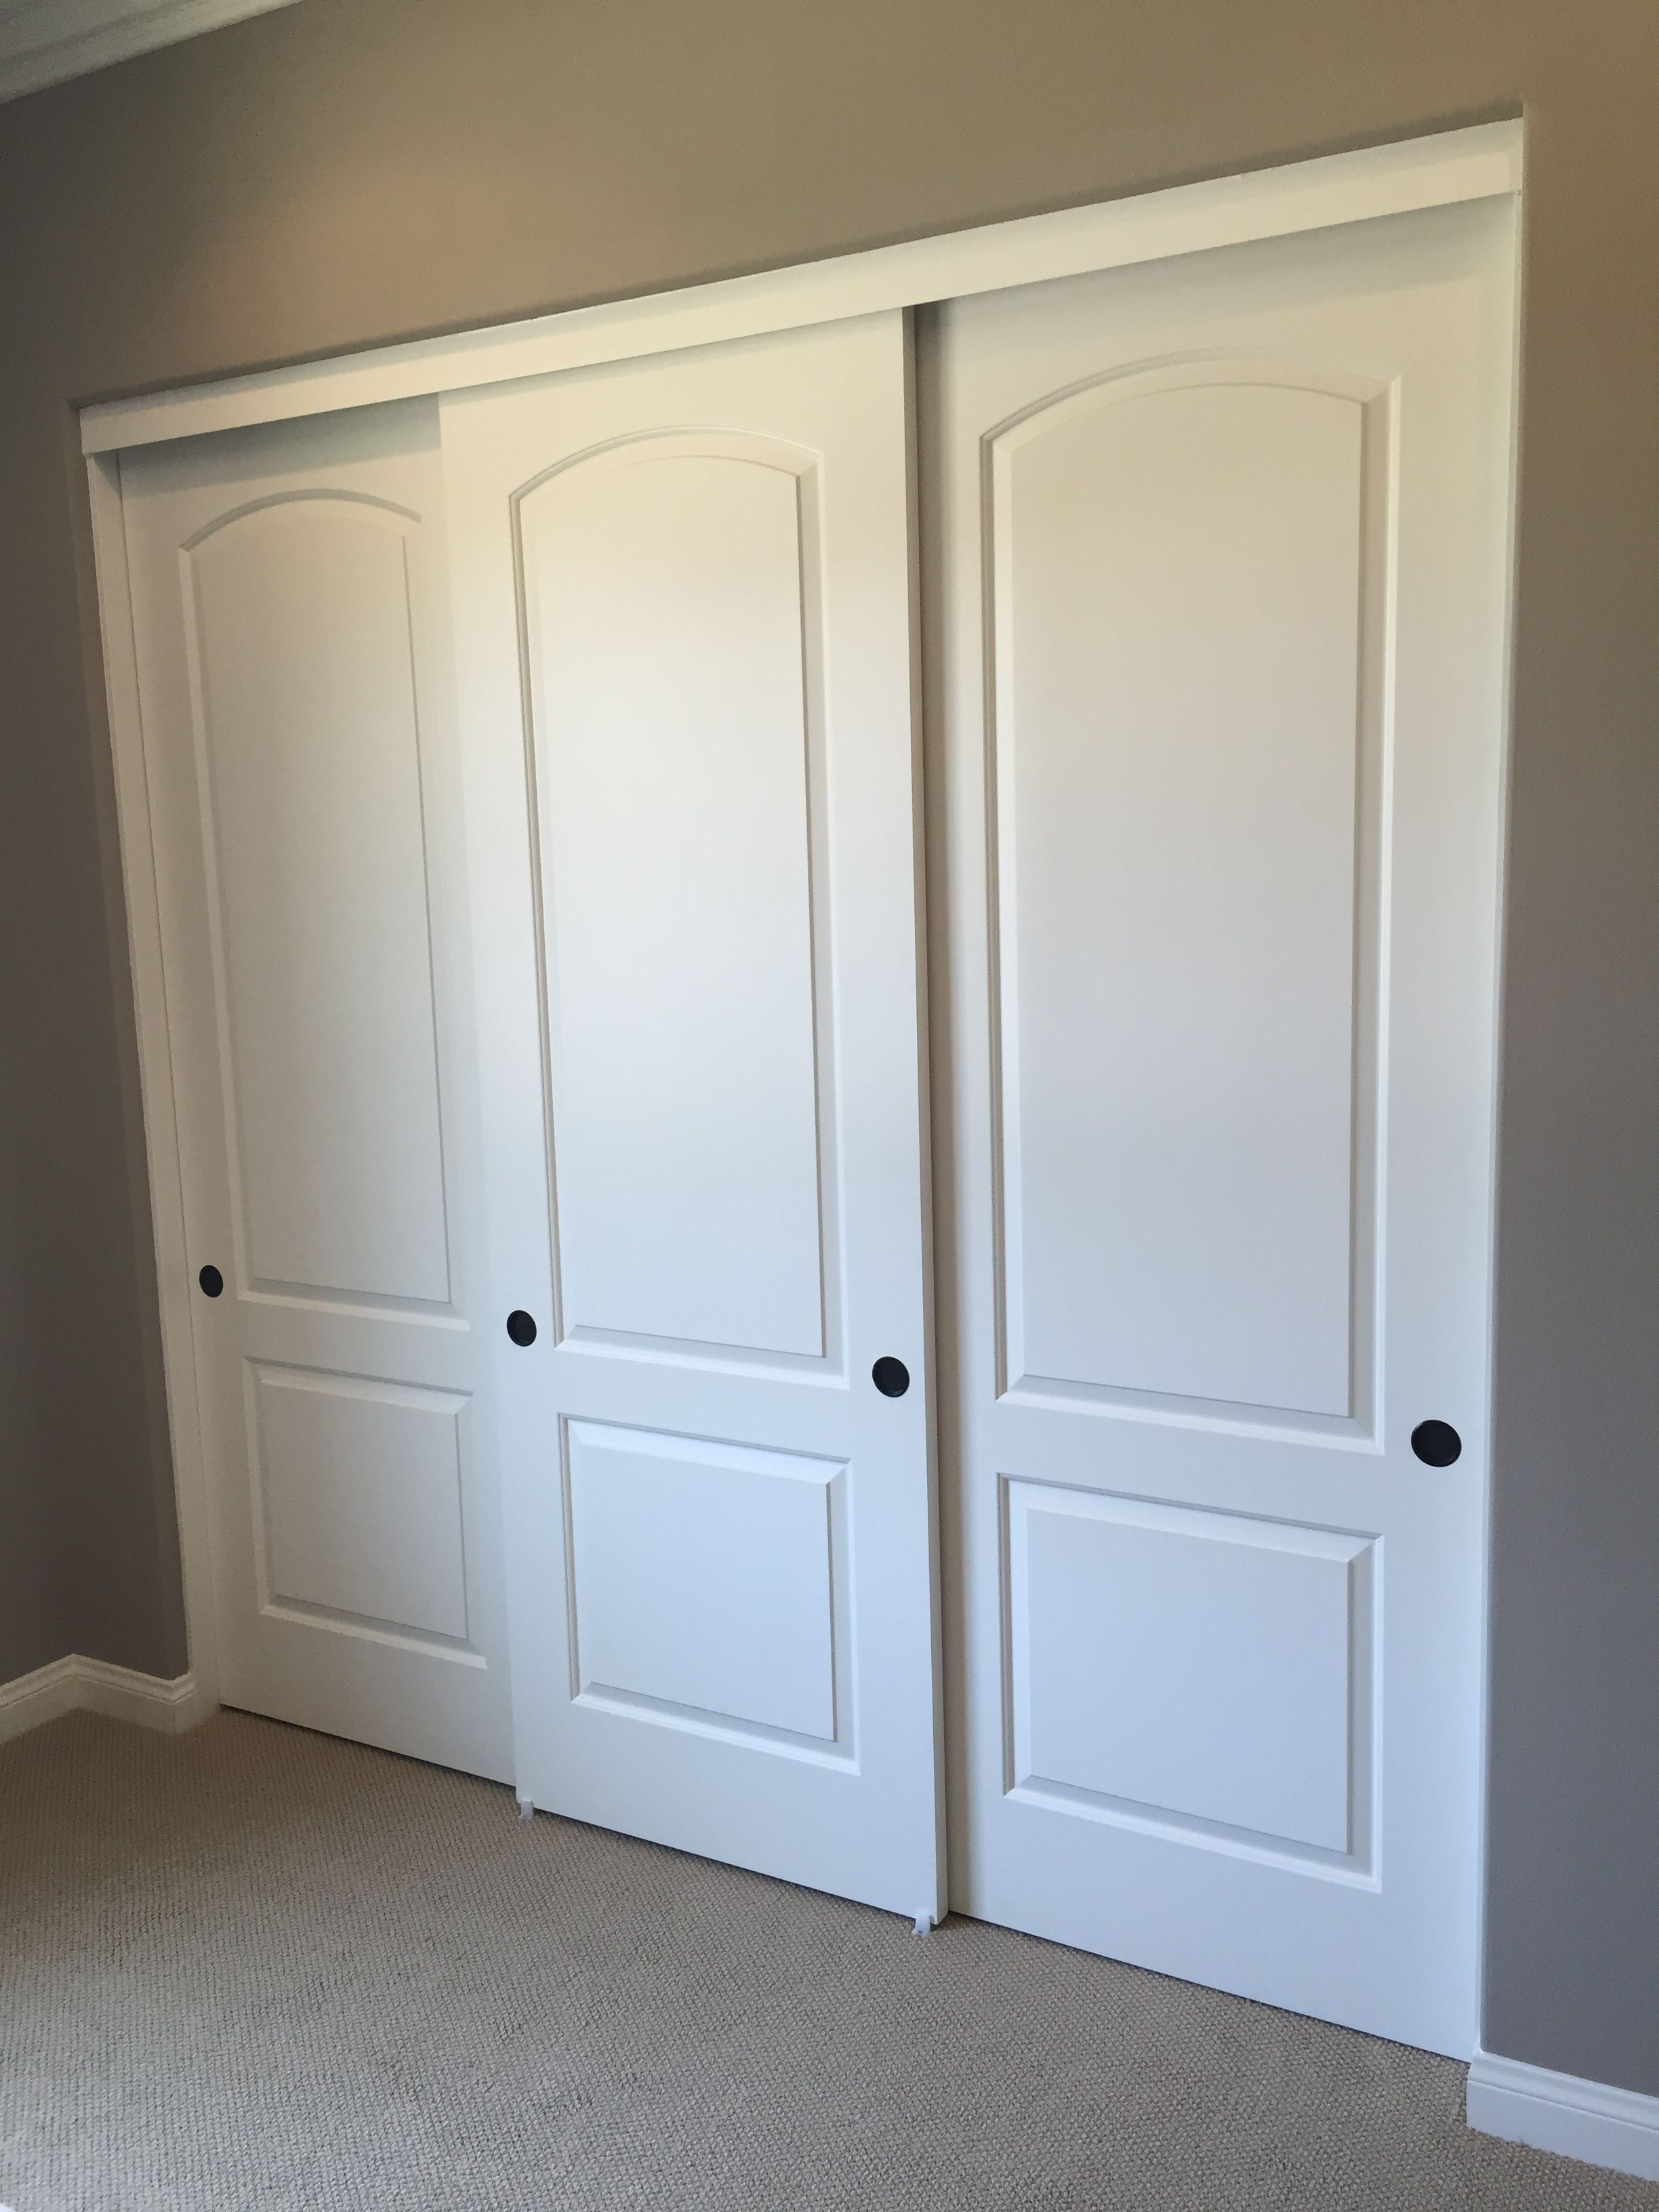 Sliding Byp Closet Doors Of Southern California Are You Looking For Hollow Core